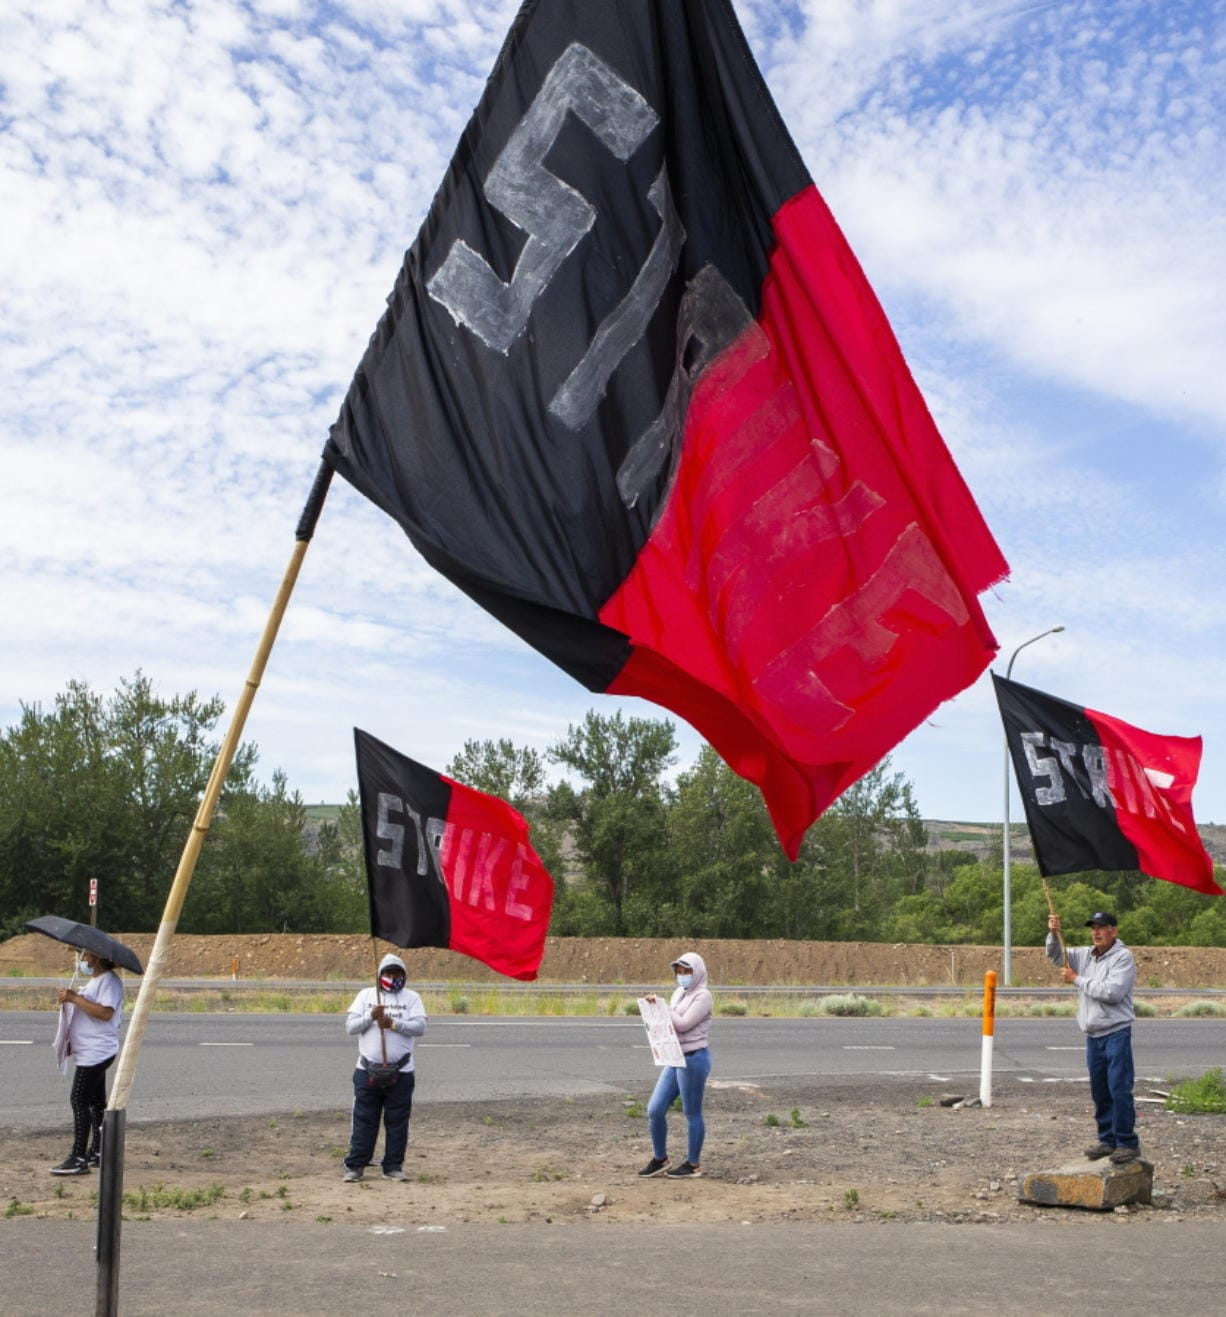 Allan Bros. workers protest along U.S. 12 shortly before coming to an agreement to return to work, Thursday, May 28, 2020, in Naches, Wash., after striking in protest of what they consider unsafe working conditions at several fruit warehouses during the COVID-19 outbreak.